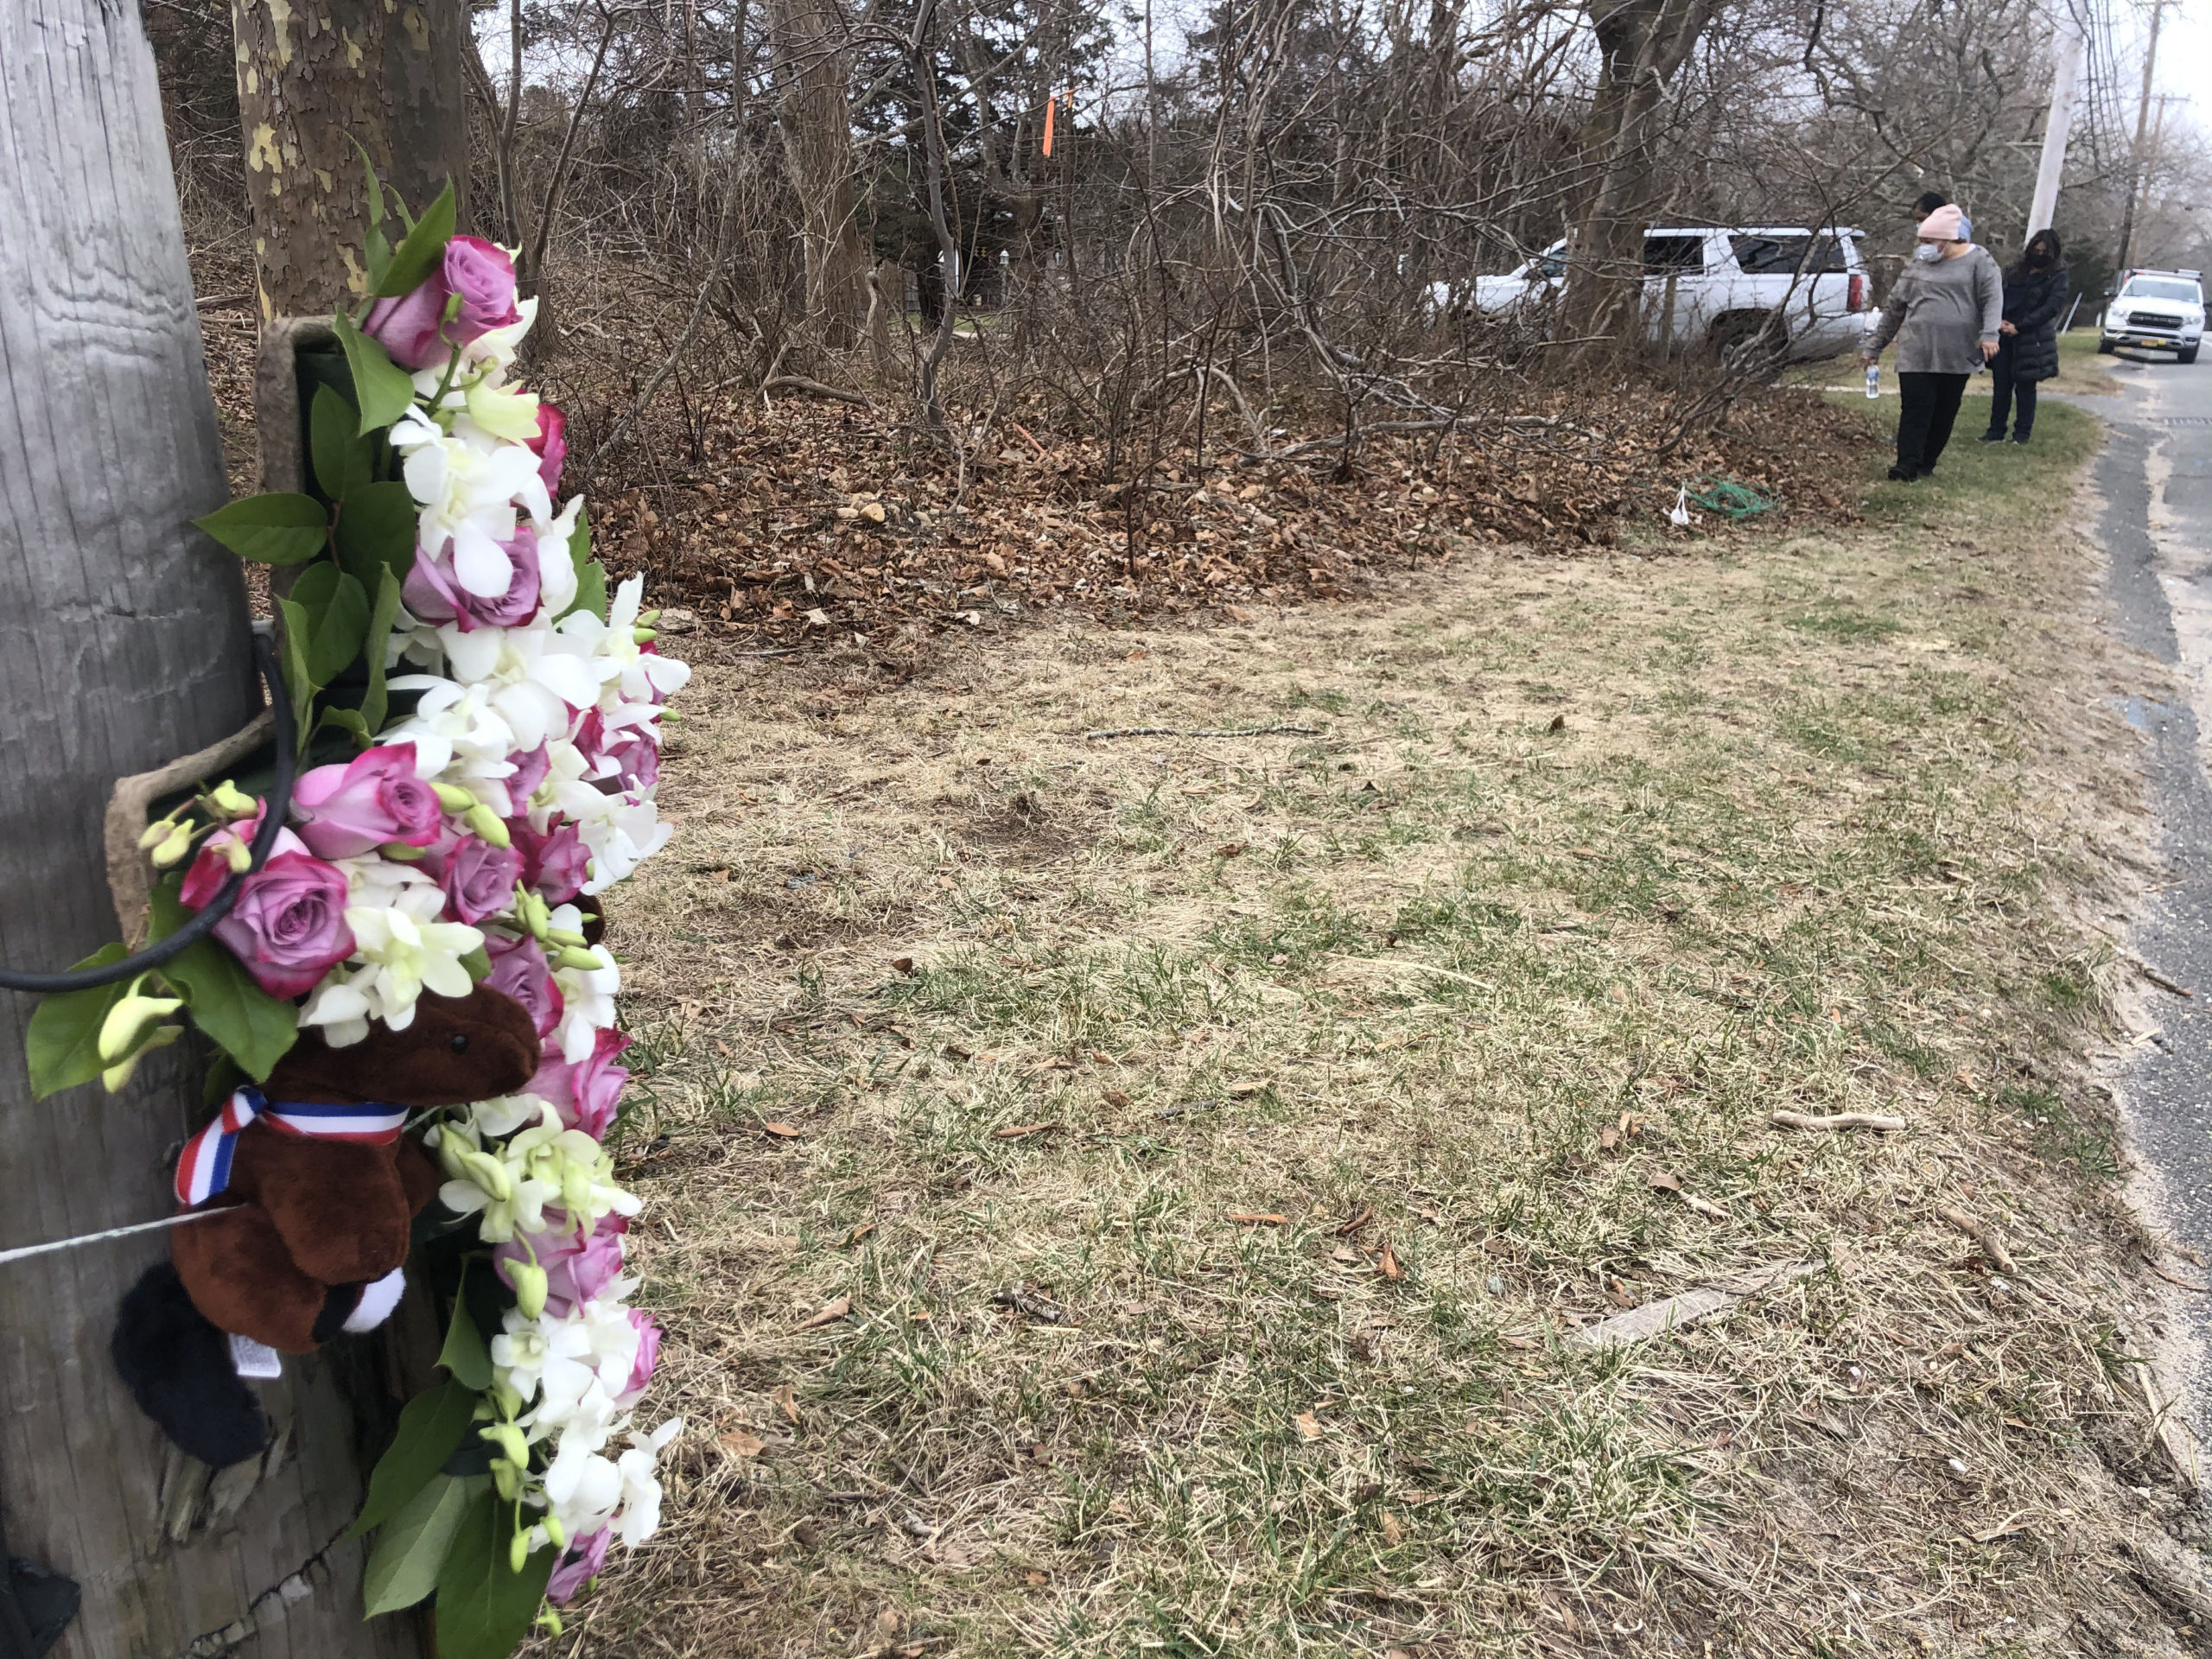 A memorial for hit and run victim Yuris Murillo Cruz has been erected near the accident site.